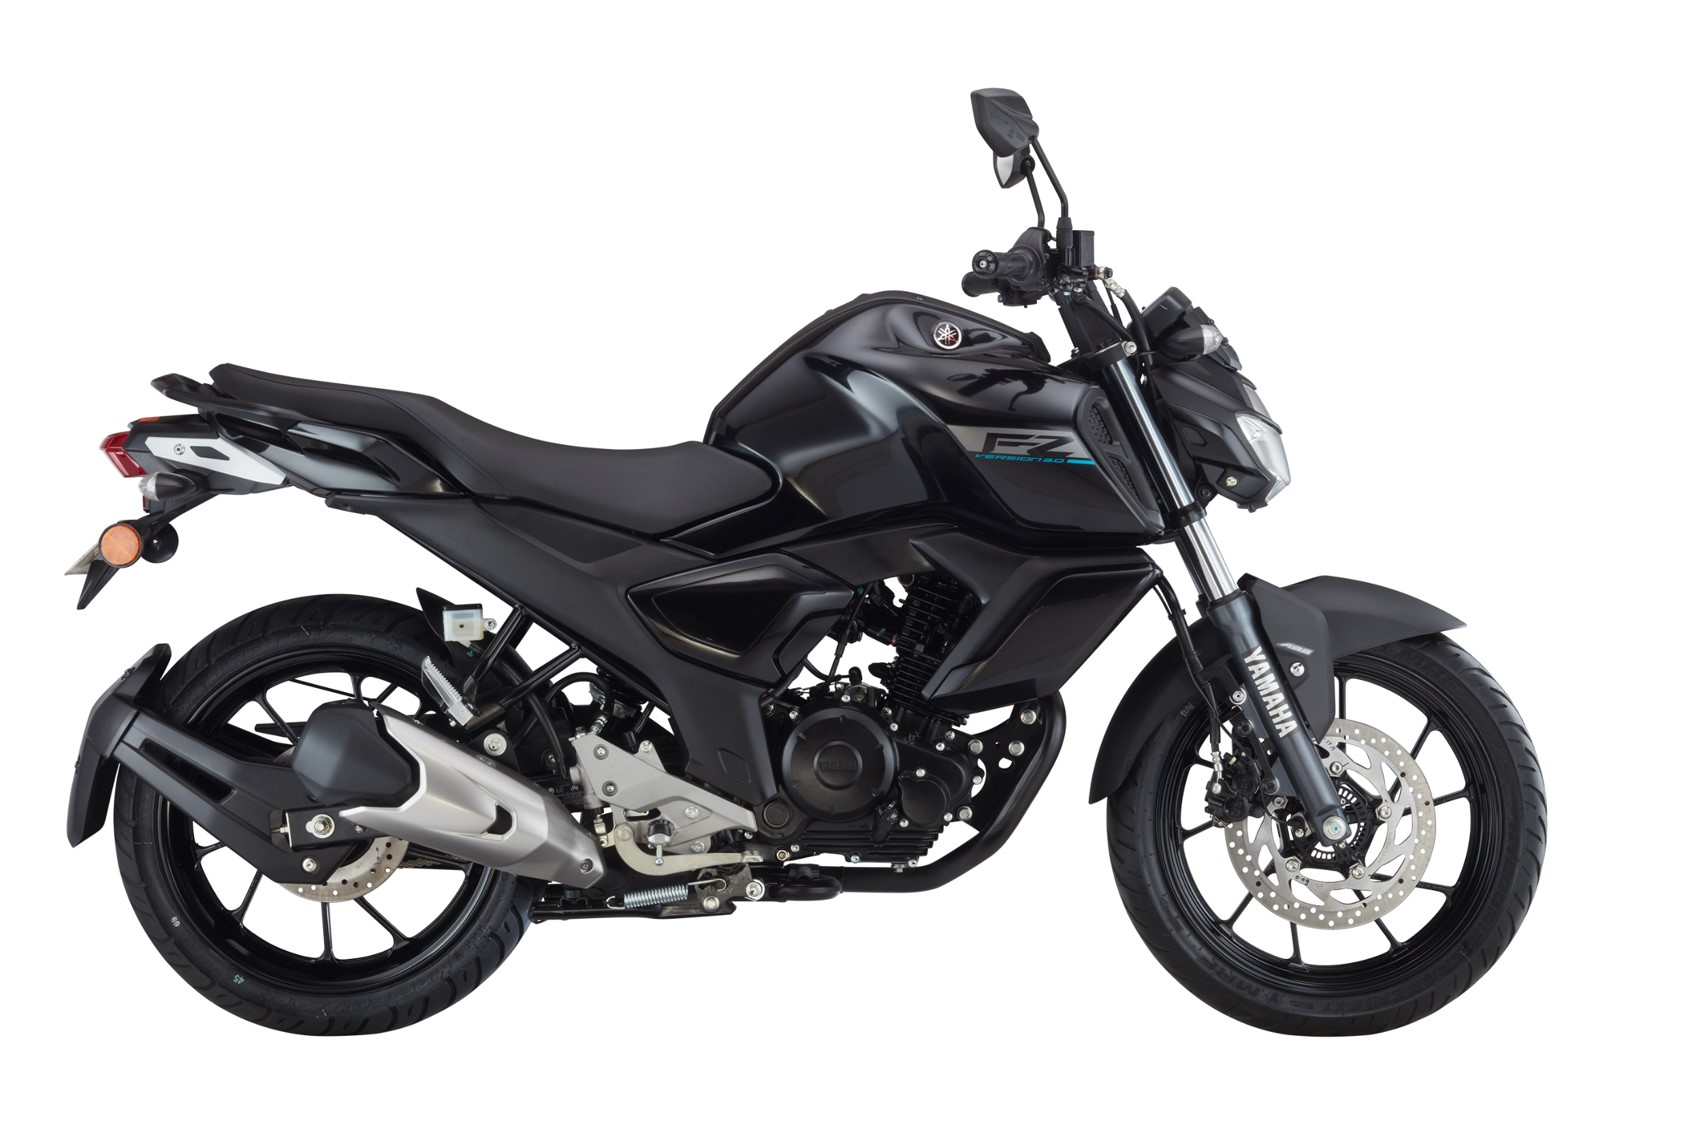 New Yamaha FZ FI V3.0 Metric Black color - New Yamaha FZ V3 ABS Black color Metric Black